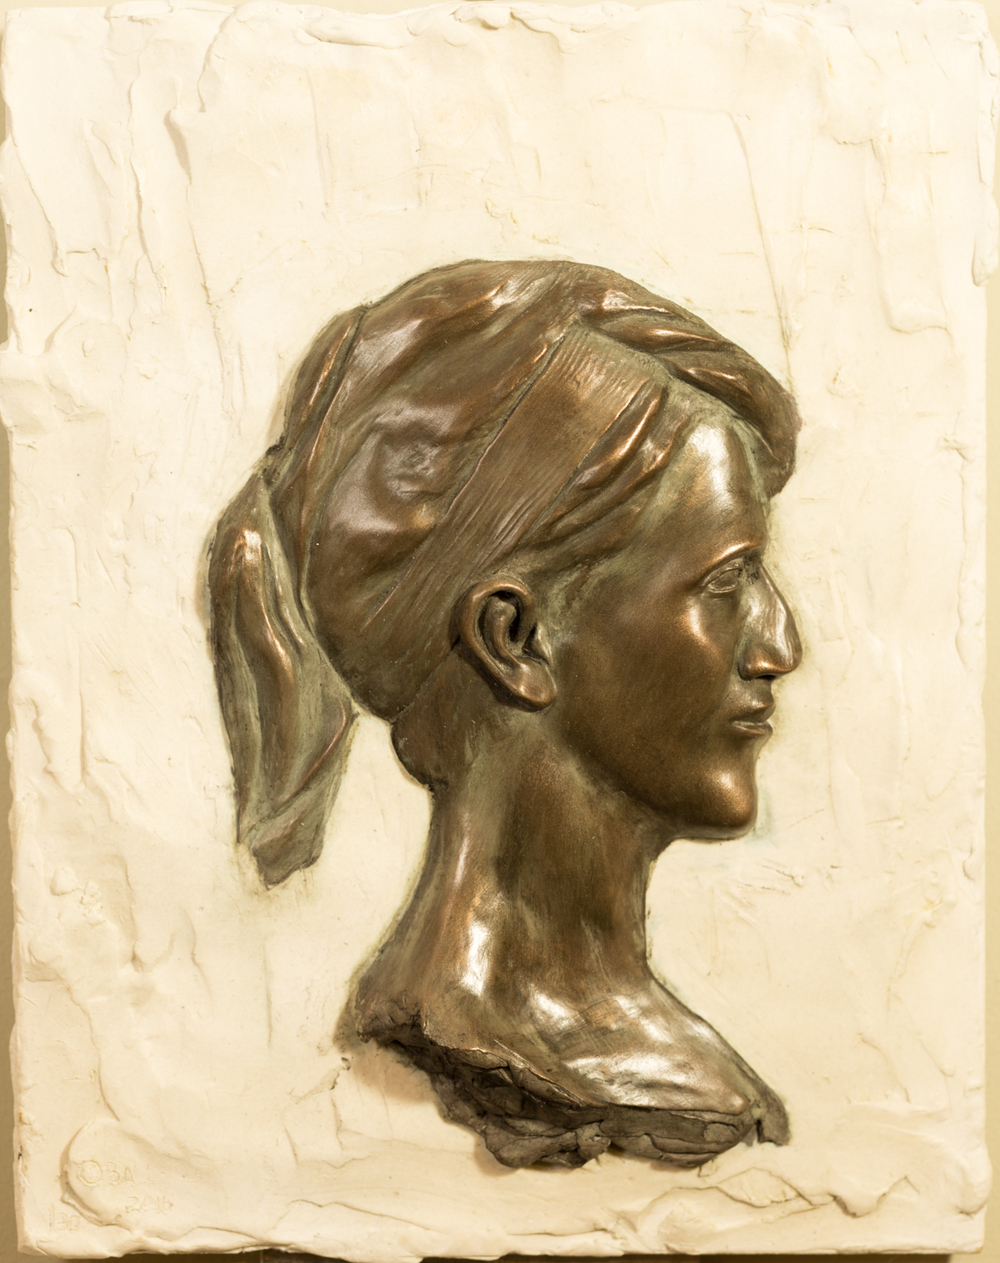 Emily (2016) FMG Bronze/Marble, Edition: 30, 14x11x.375in. $1,350